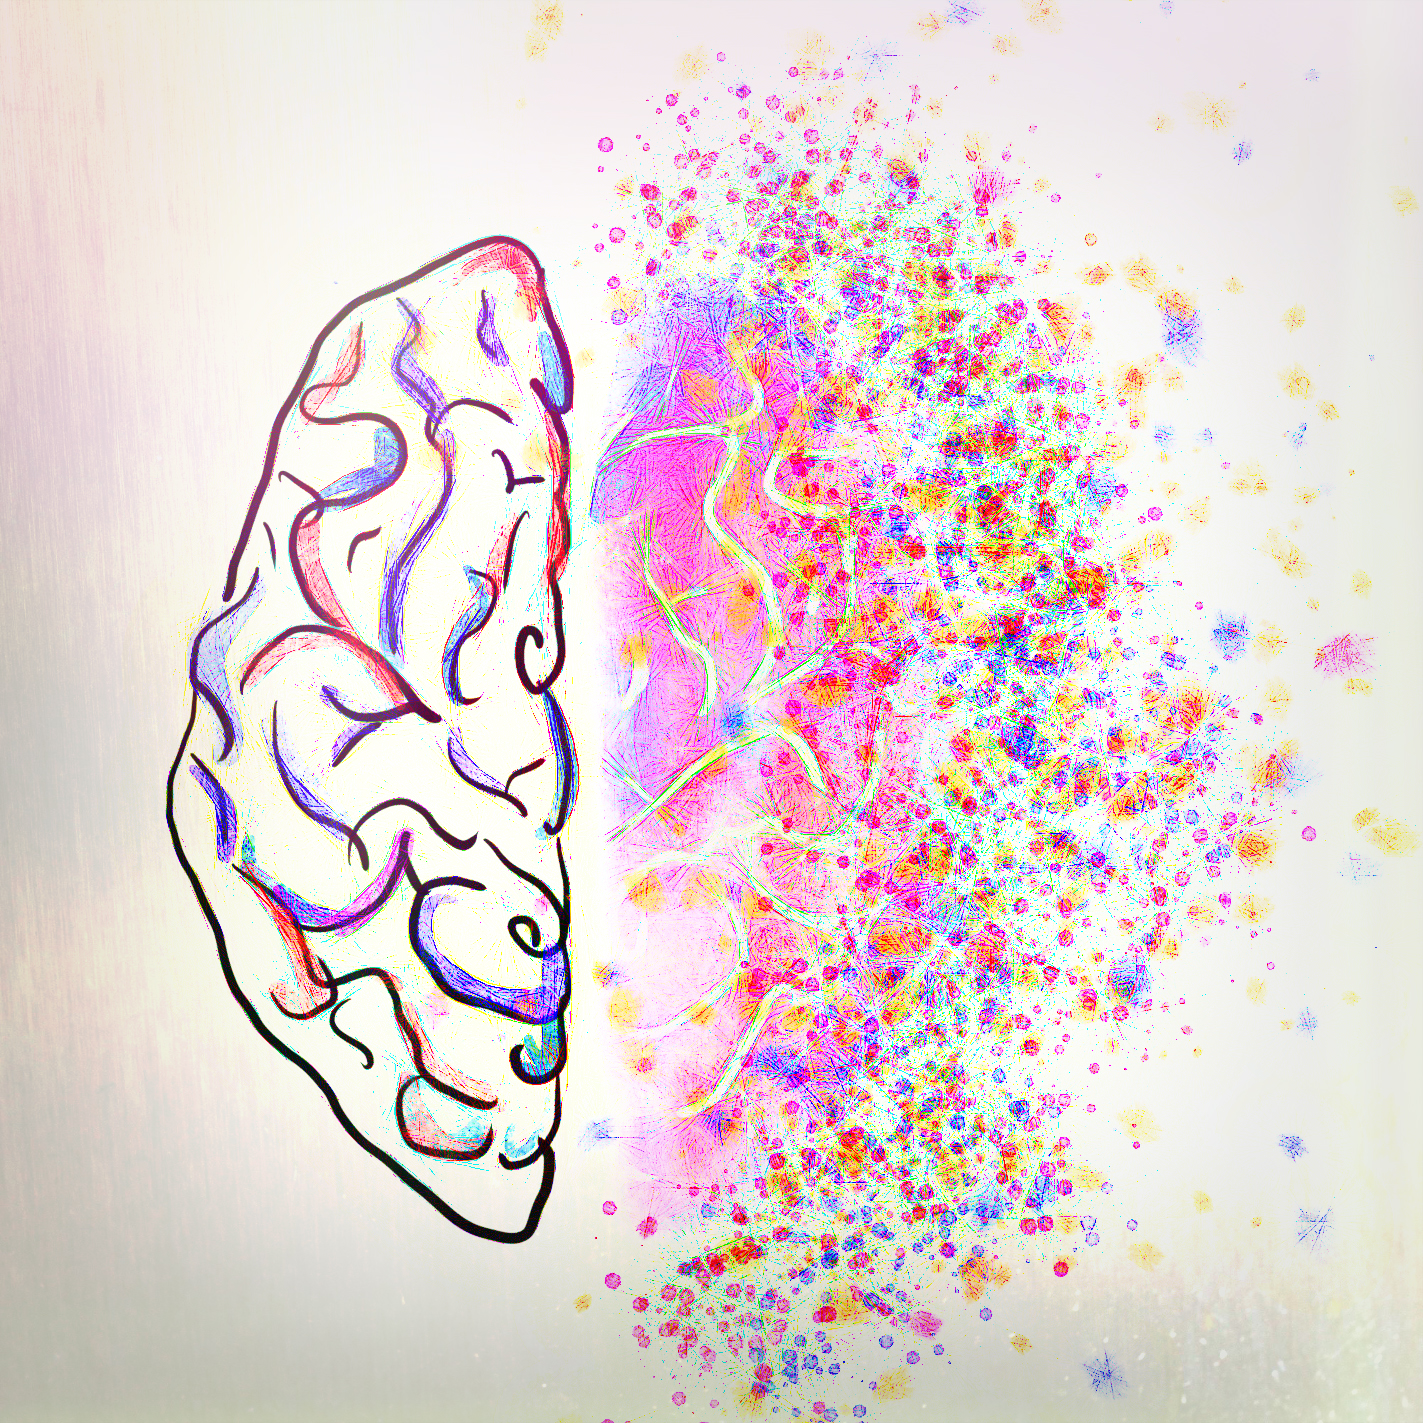 The Brain Offers A Clue Into Our Nature